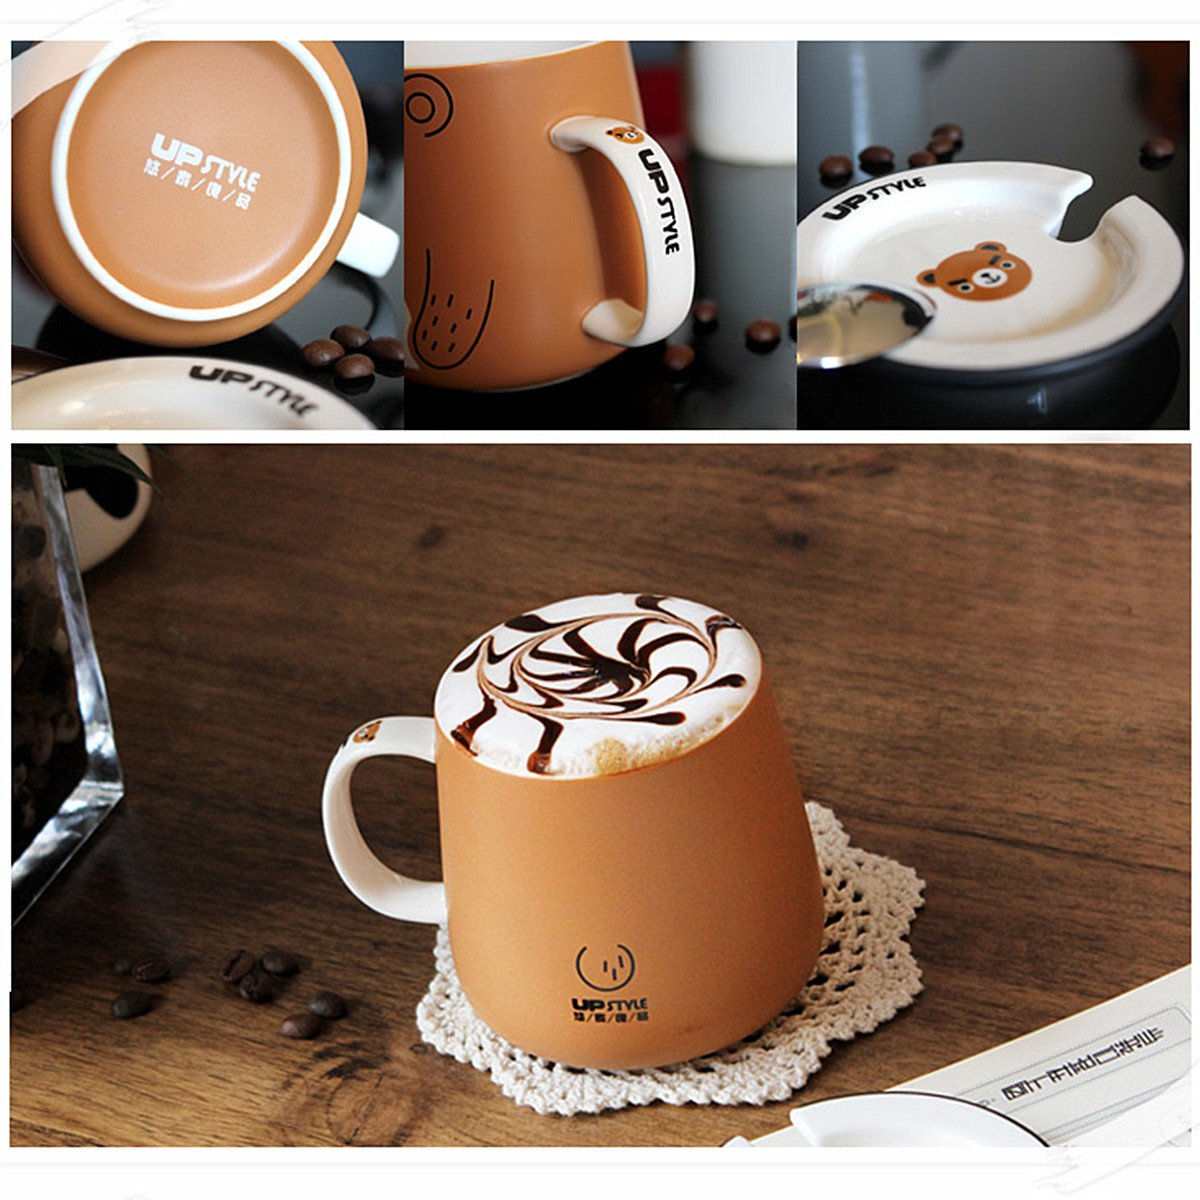 UPSTYLE Cute Animal Penguin Tea Mug Funny Lovely Tea and Coffee Mug Morning Coffee Milk Ceramic Water Cup with Lid and Handle for Office home - Best Gift for friends and family,10.8OZ(320ml)(Bear) by UPSTYLE (Image #3)